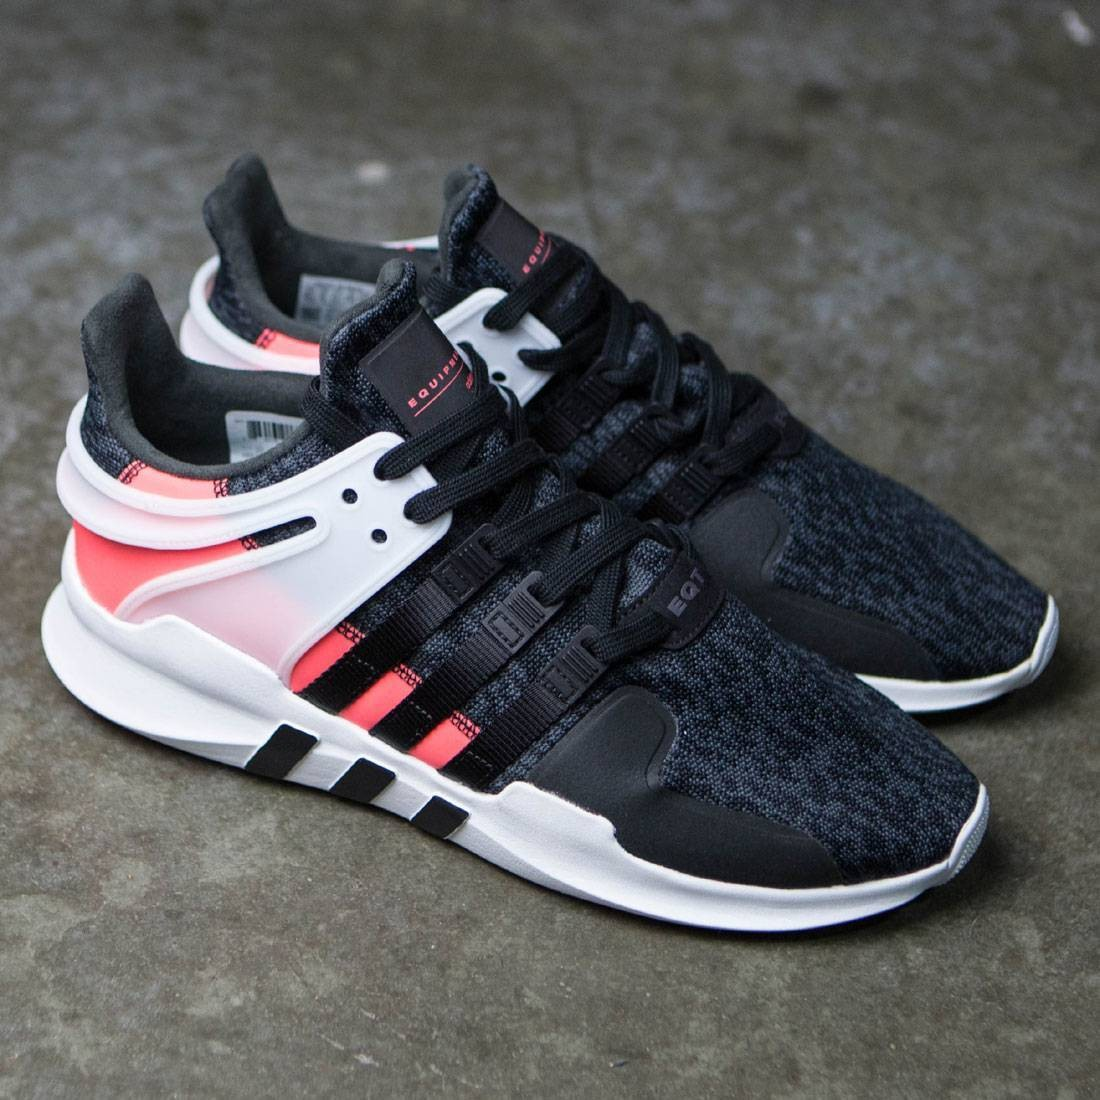 adidas eqt support black red cheap online